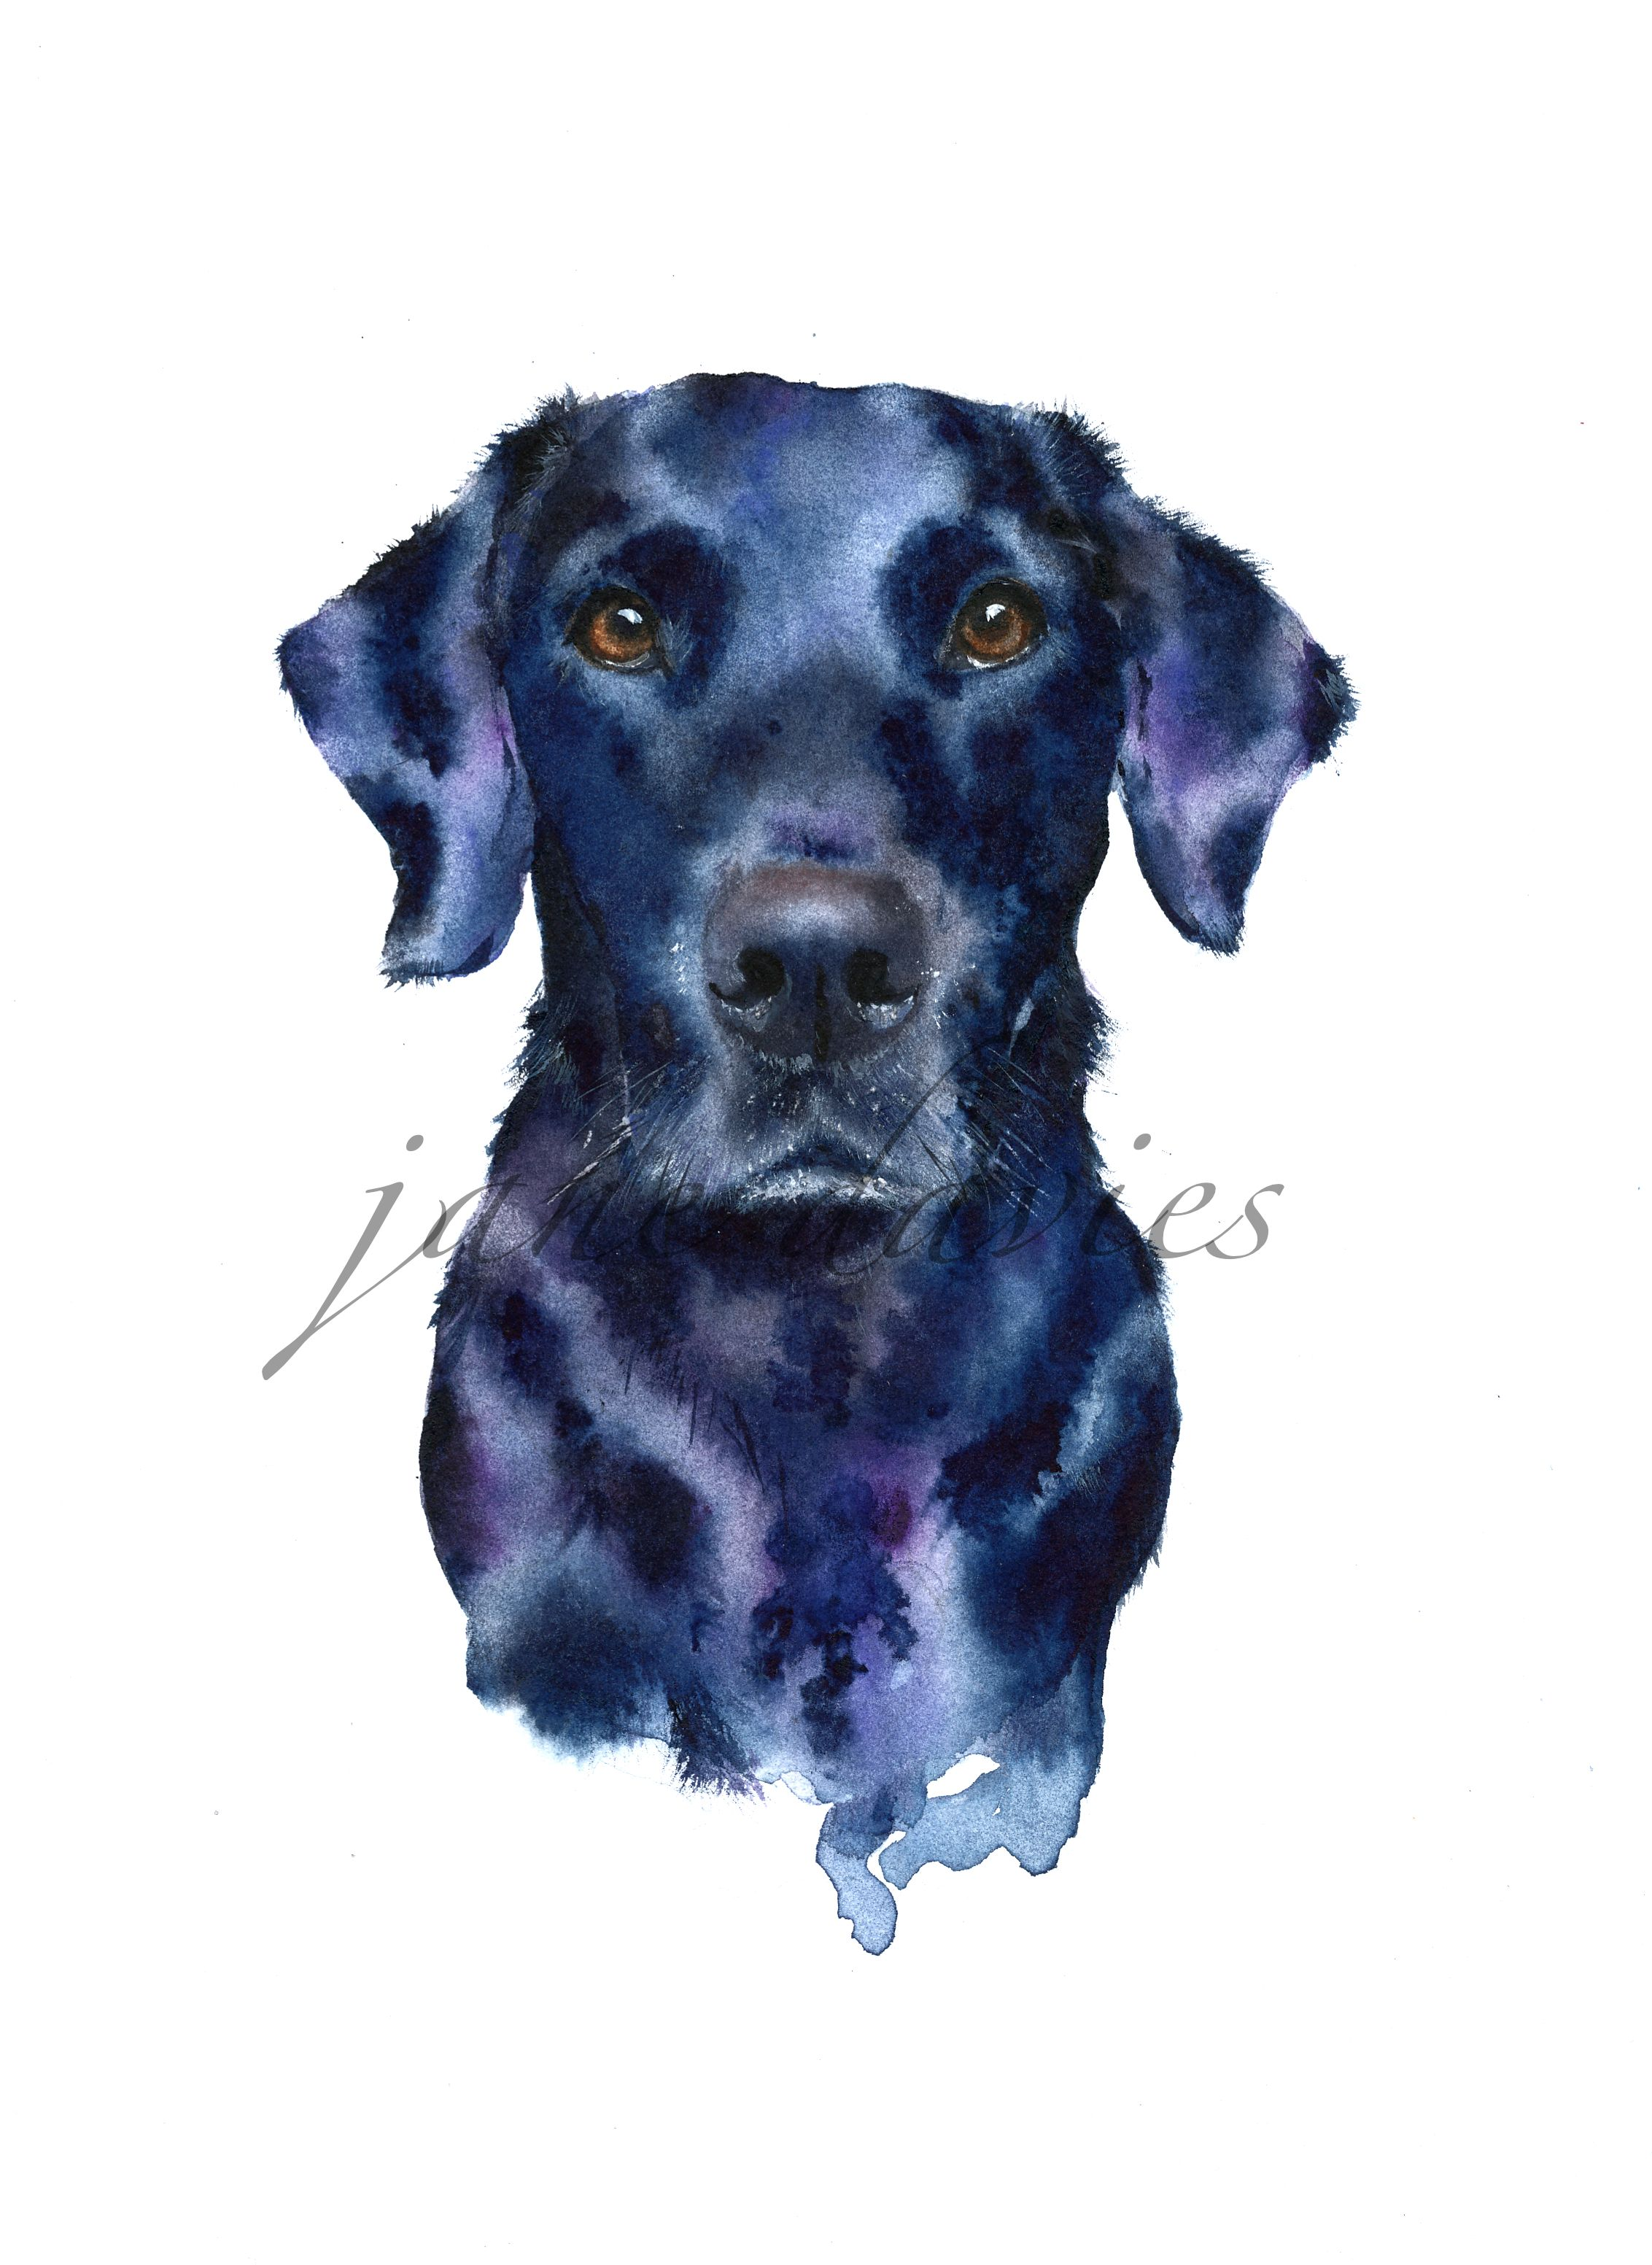 Black Labrador painted by watercolour artist Jane Davies. Available as an LIMITED EDITION PRINT.